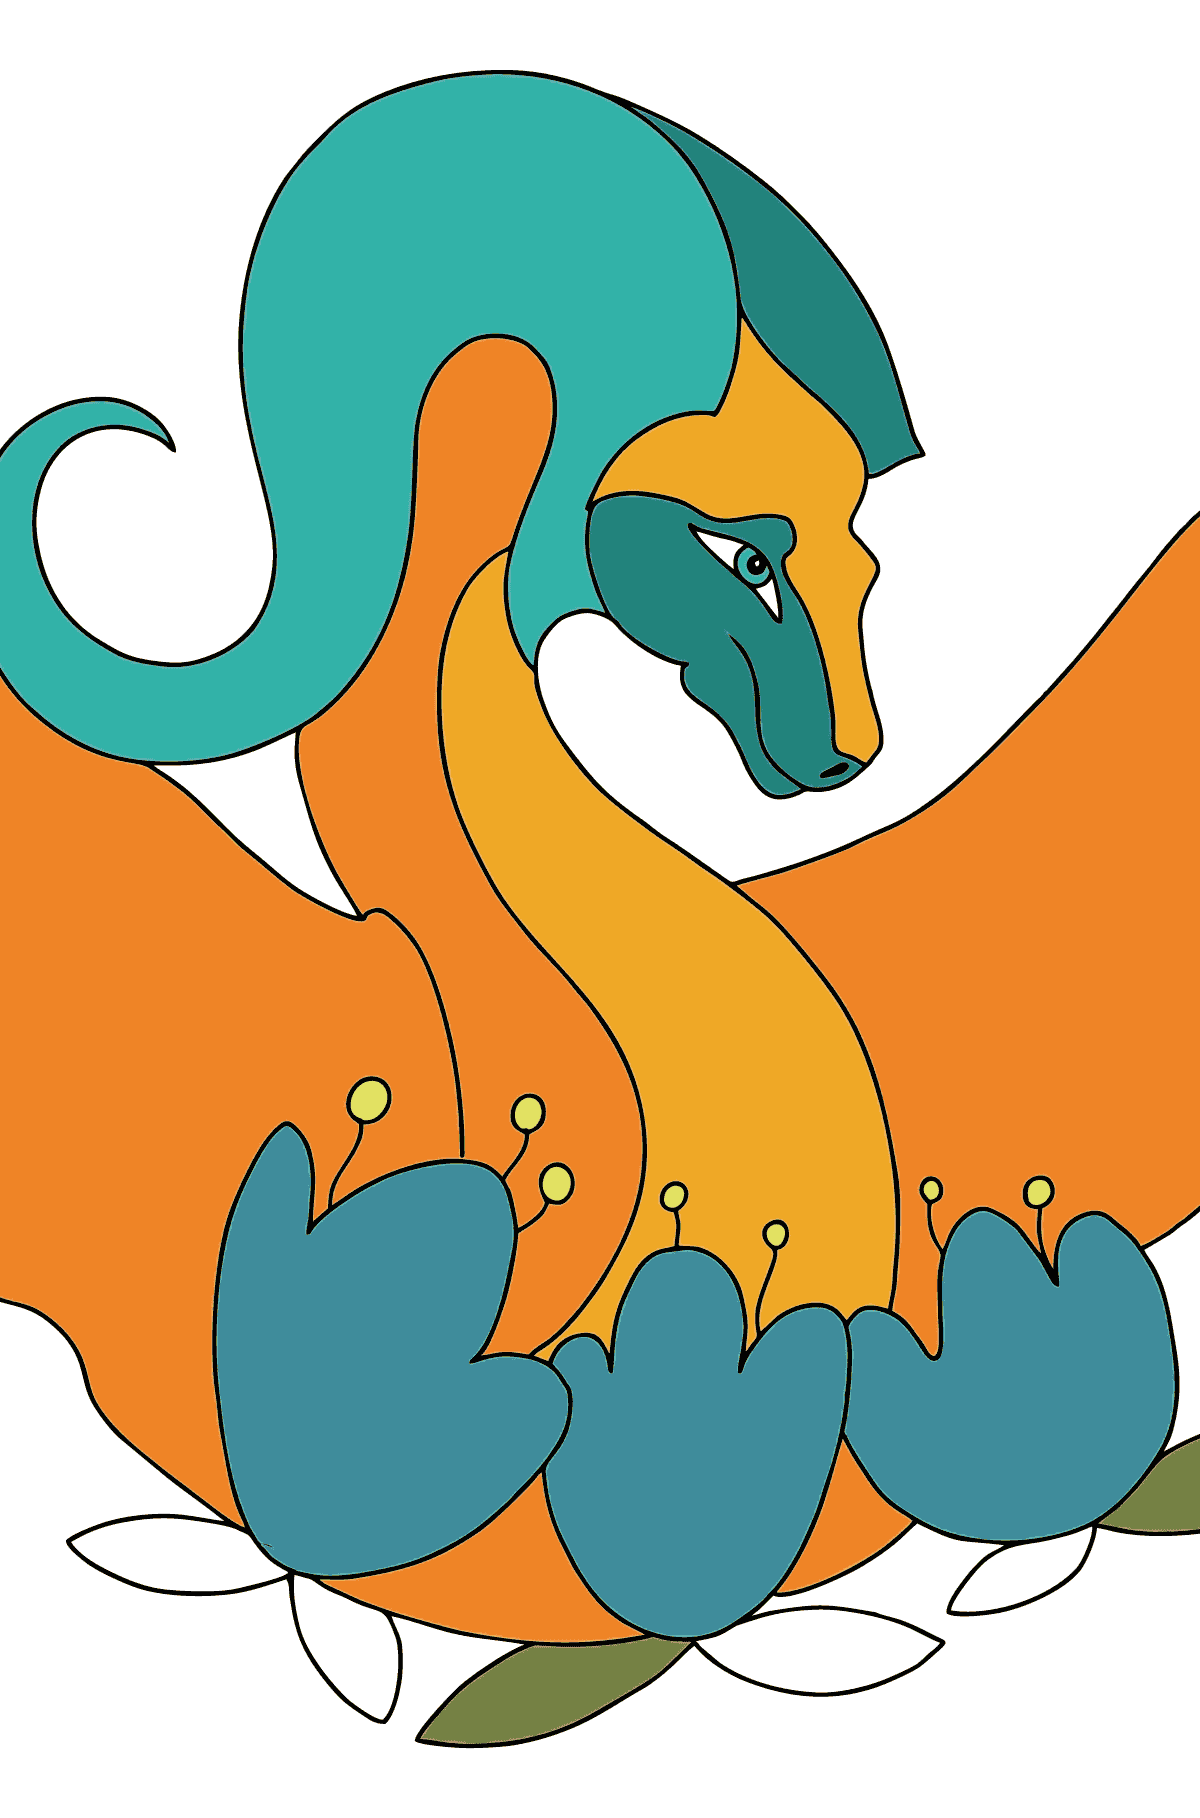 Coloring Page - A Dragon in Orange - Coloring Pages for Children